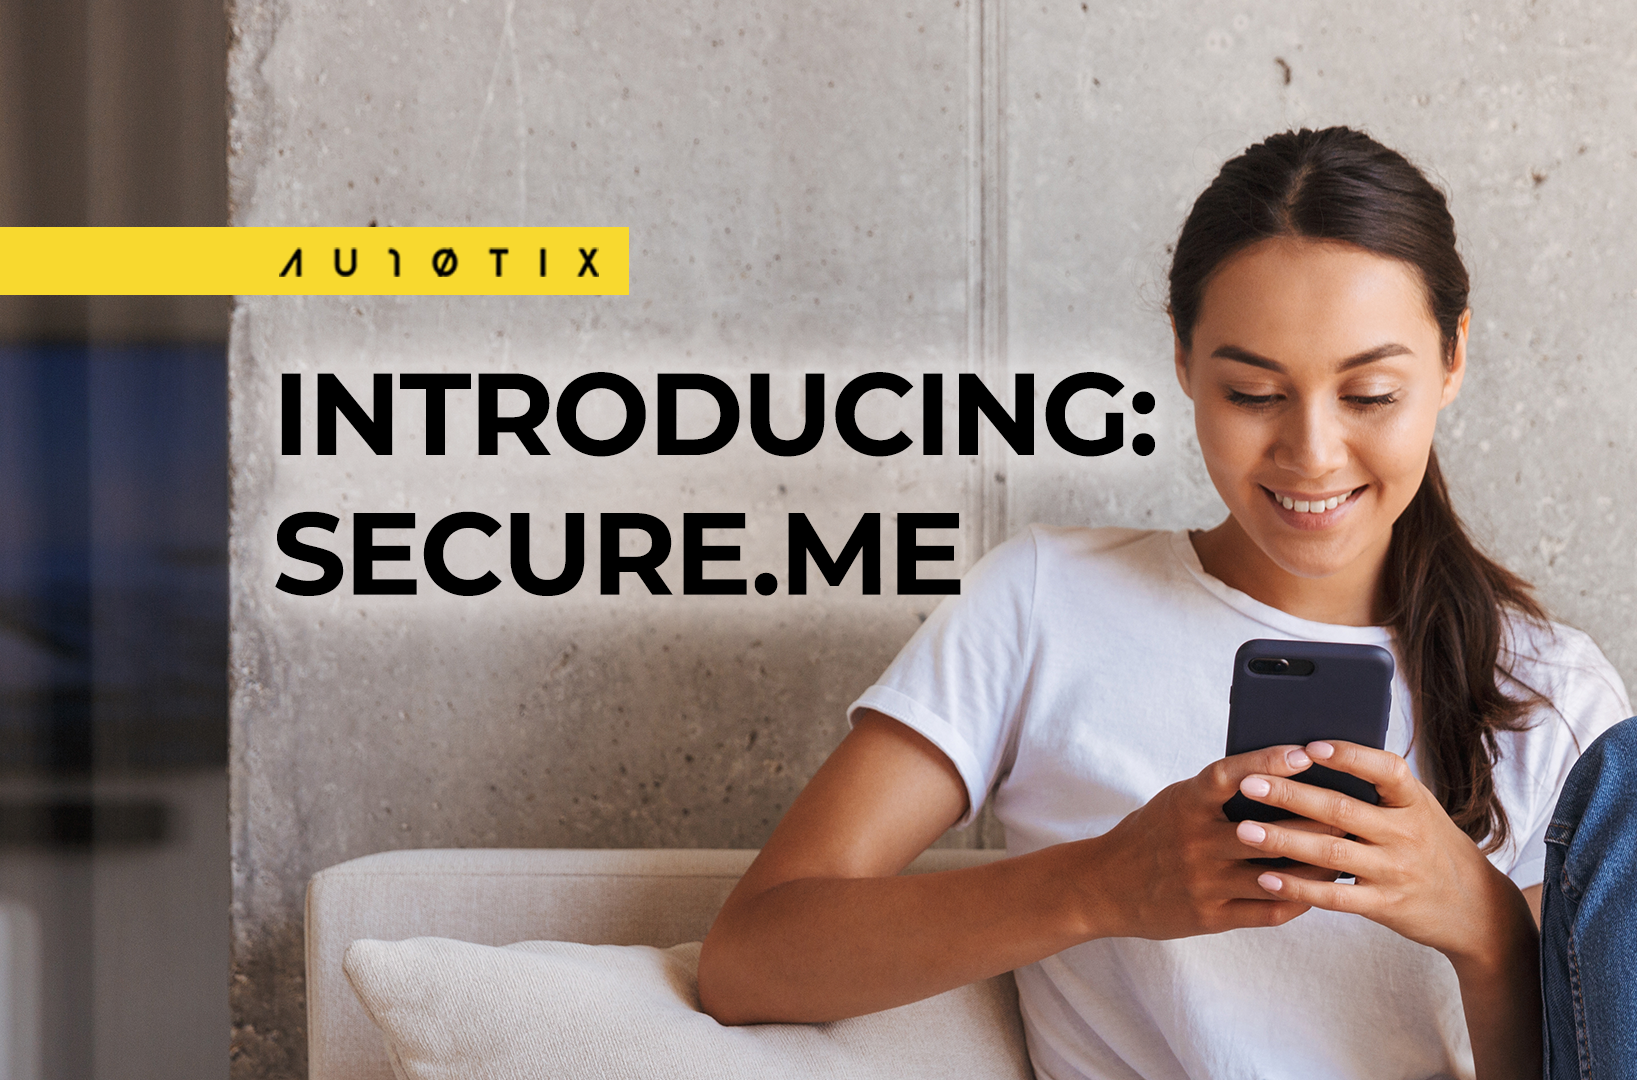 AU10TIX Launches SECURE.ME, a White Label Identity Verification Experience